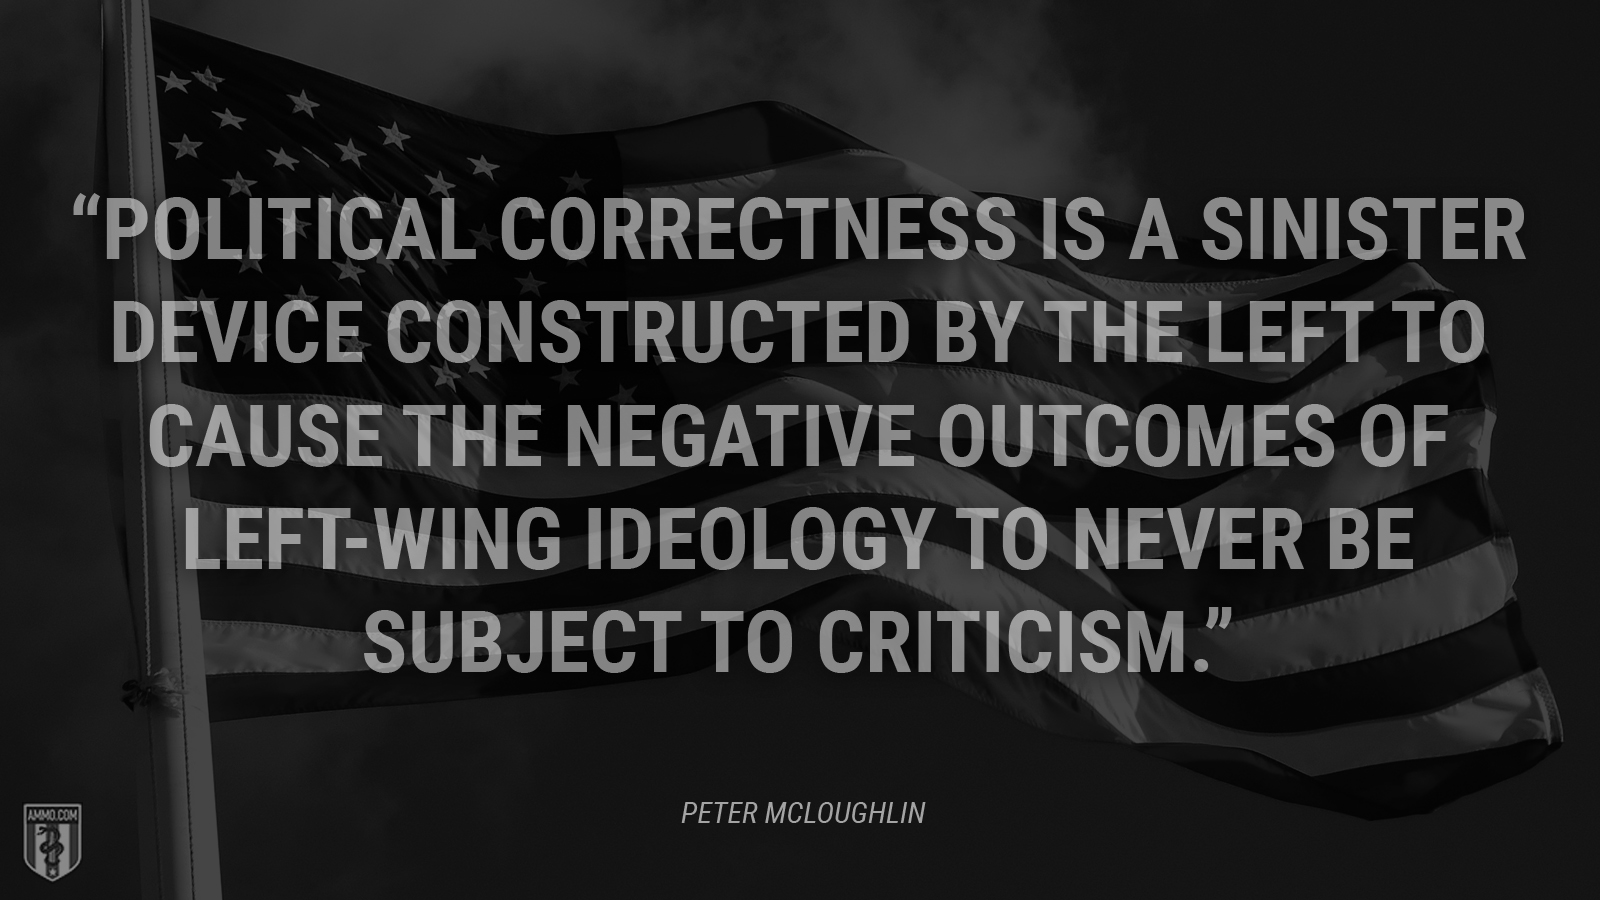 """Political correctness is a sinister device constructed by the left to cause the negative outcomes of left-wing ideology to never be subject to criticism."" - Peter McLoughlin"